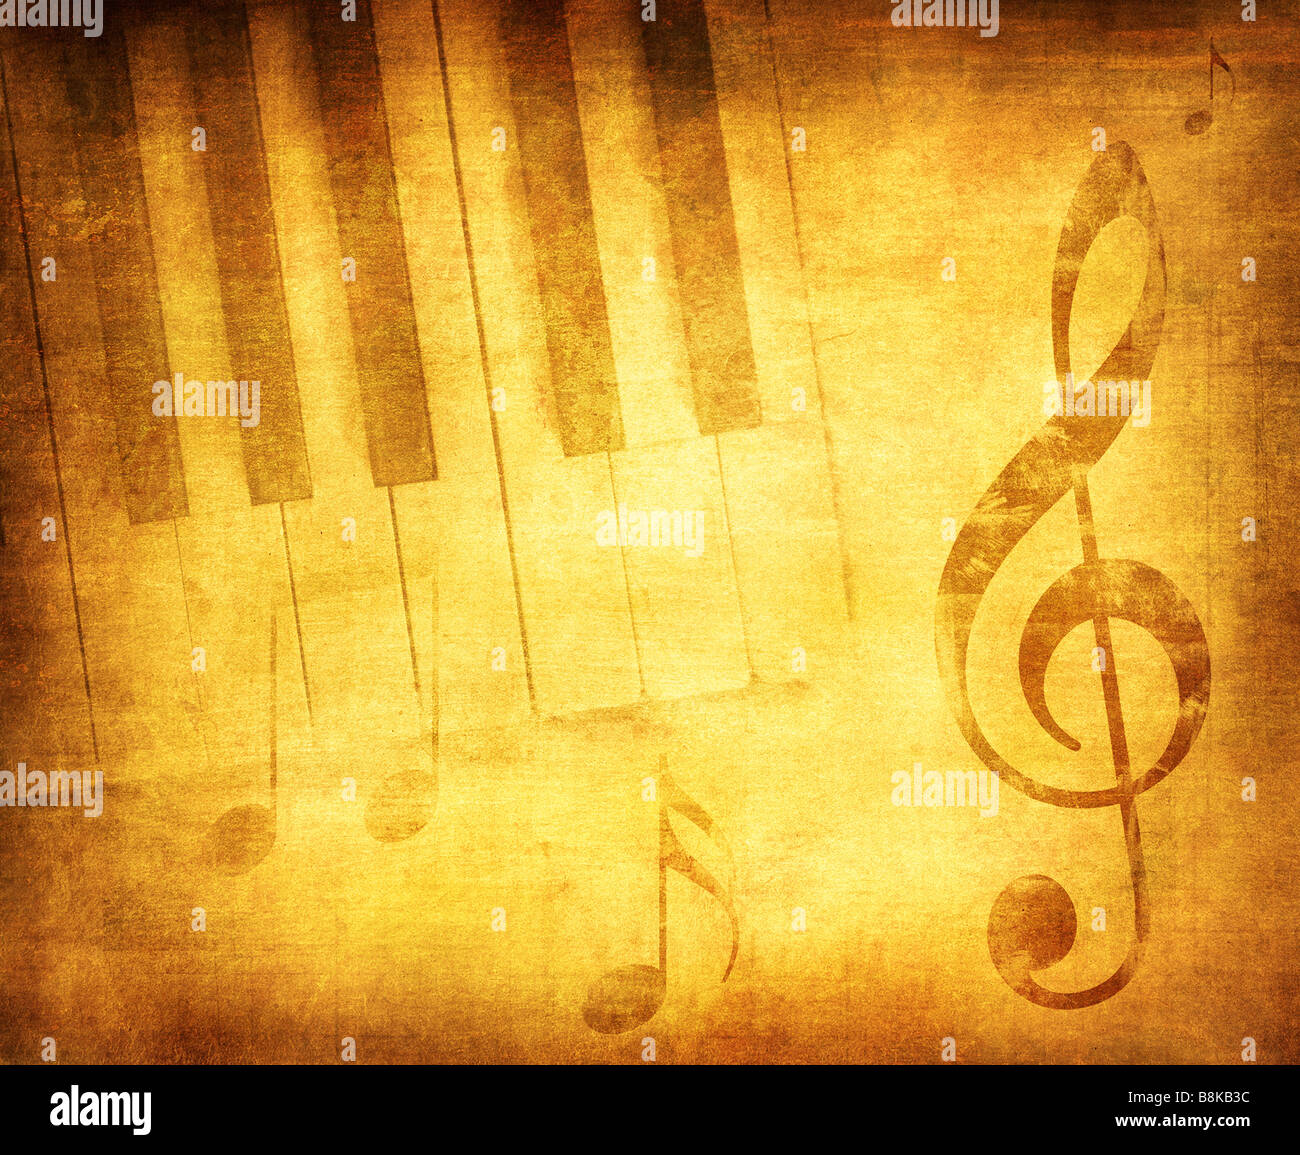 grunge music background with space for text or image - Stock Image